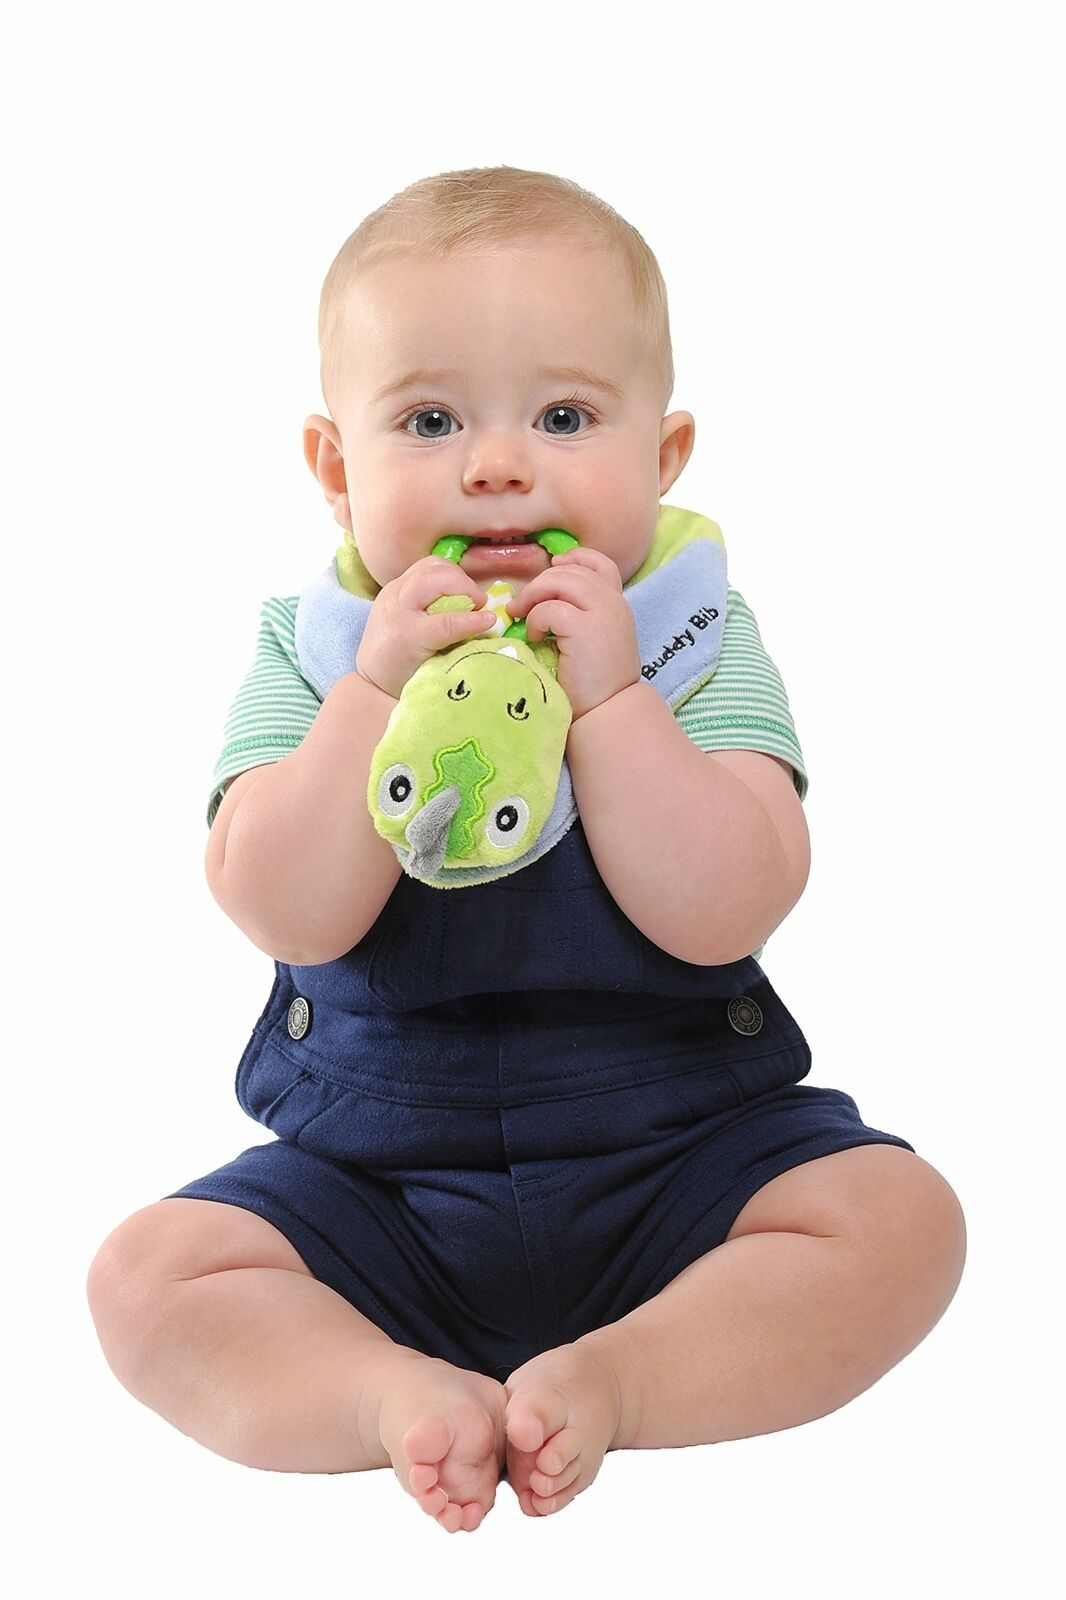 Munch Mitt the Original Mom Invented Teething Toy and 3 in 1 Buddy Bib- Self-... image 6